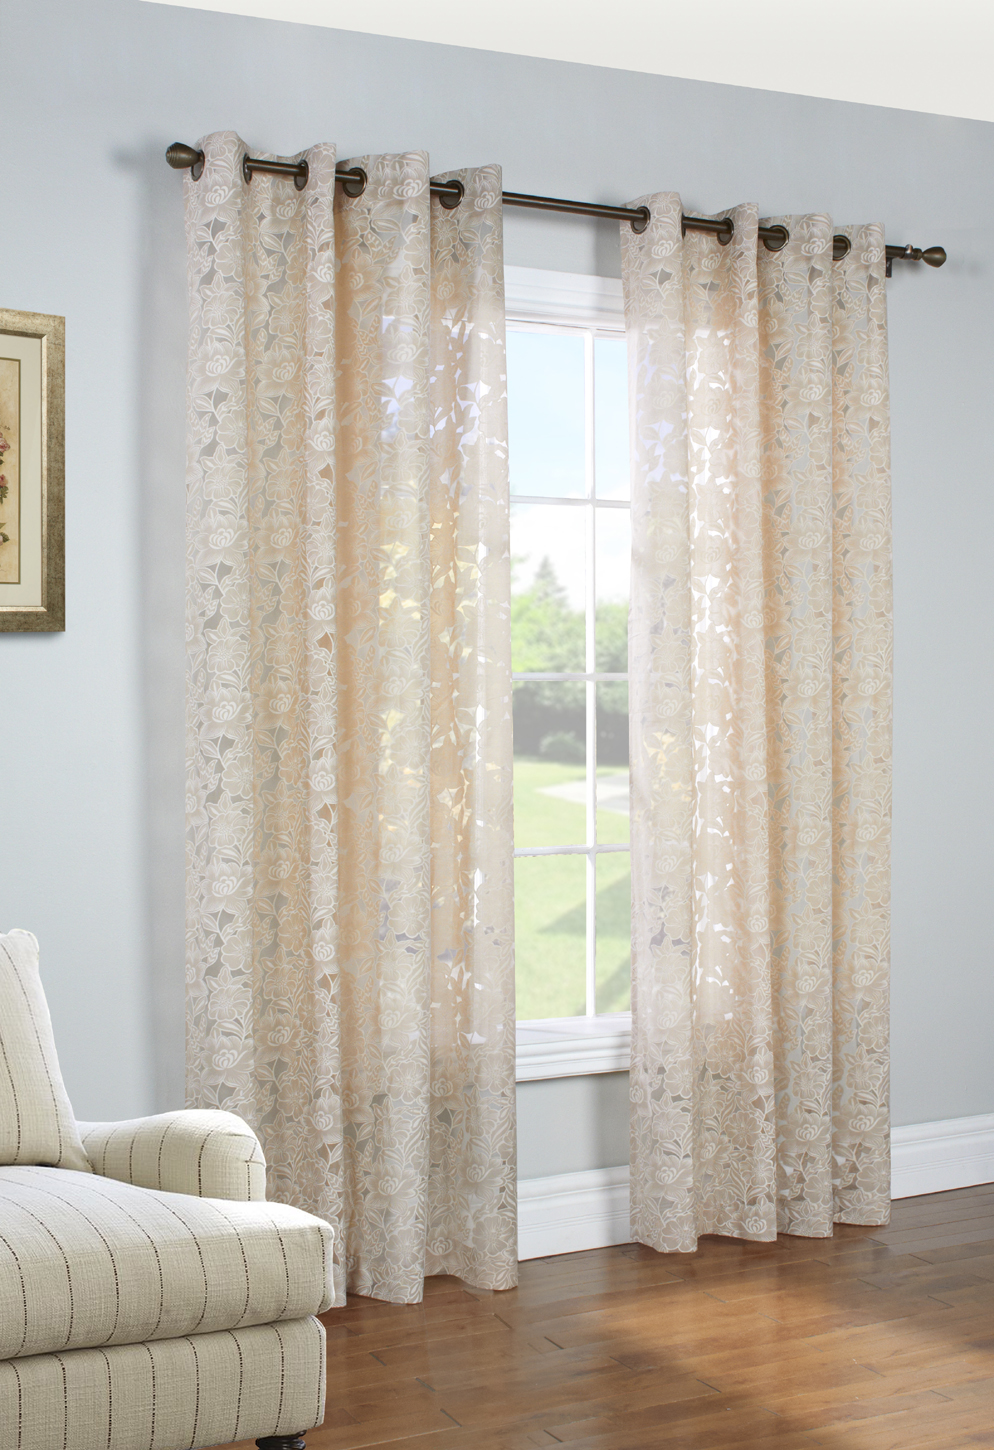 Drapery And Curtain Ideas: Curtains, Drapes, Shades ­- TheCurtainShop.com